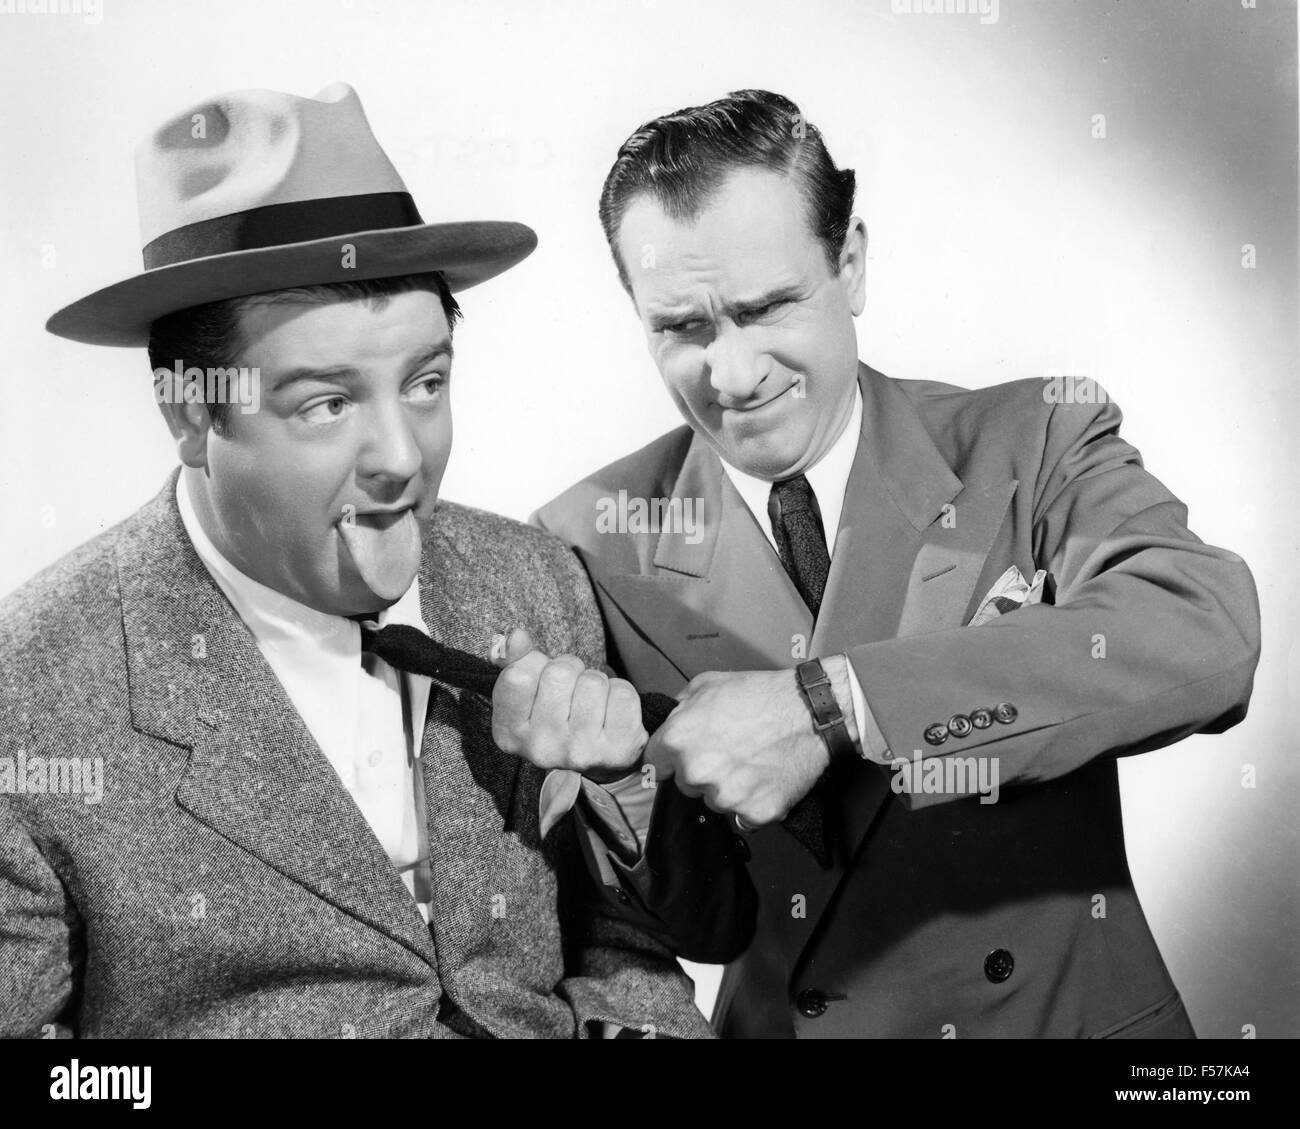 abbott and costello american film comedy duo with lou costello at